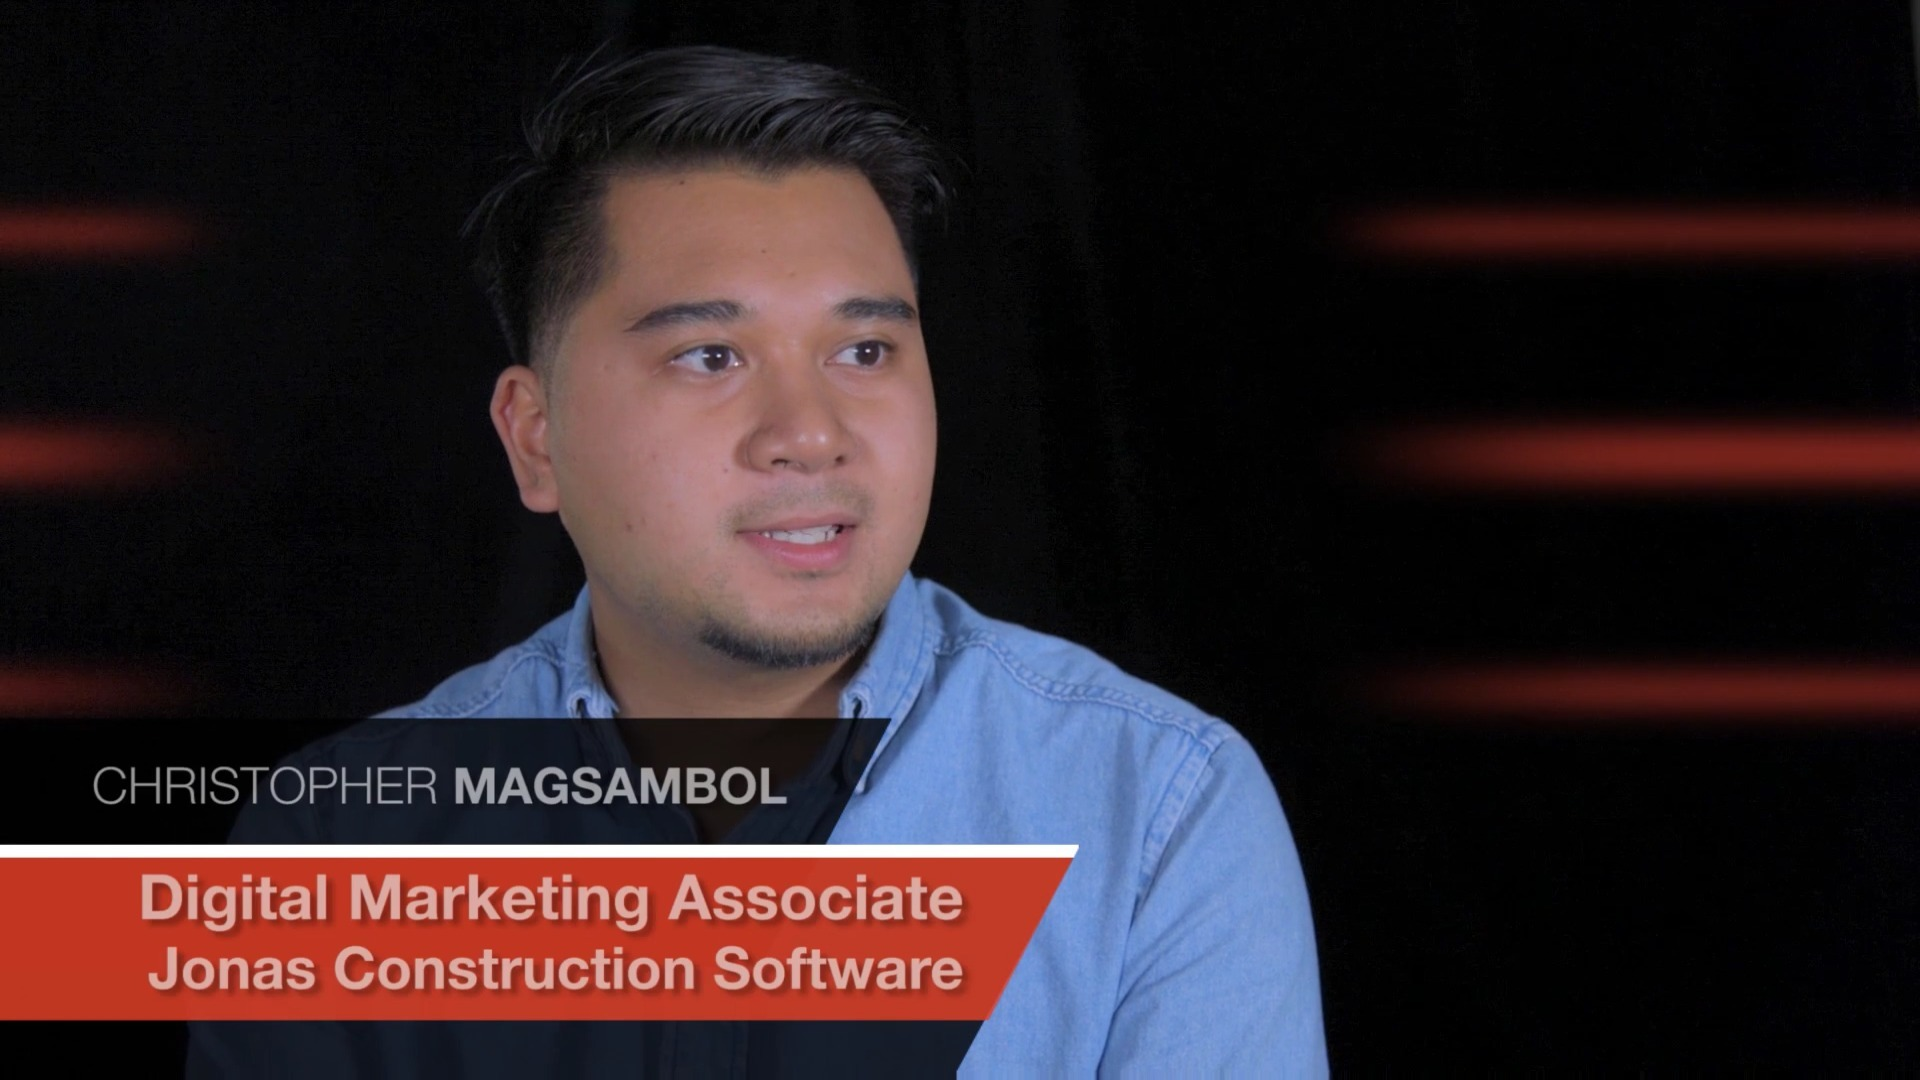 Christopher Magsambol, Digital Marketing Associate